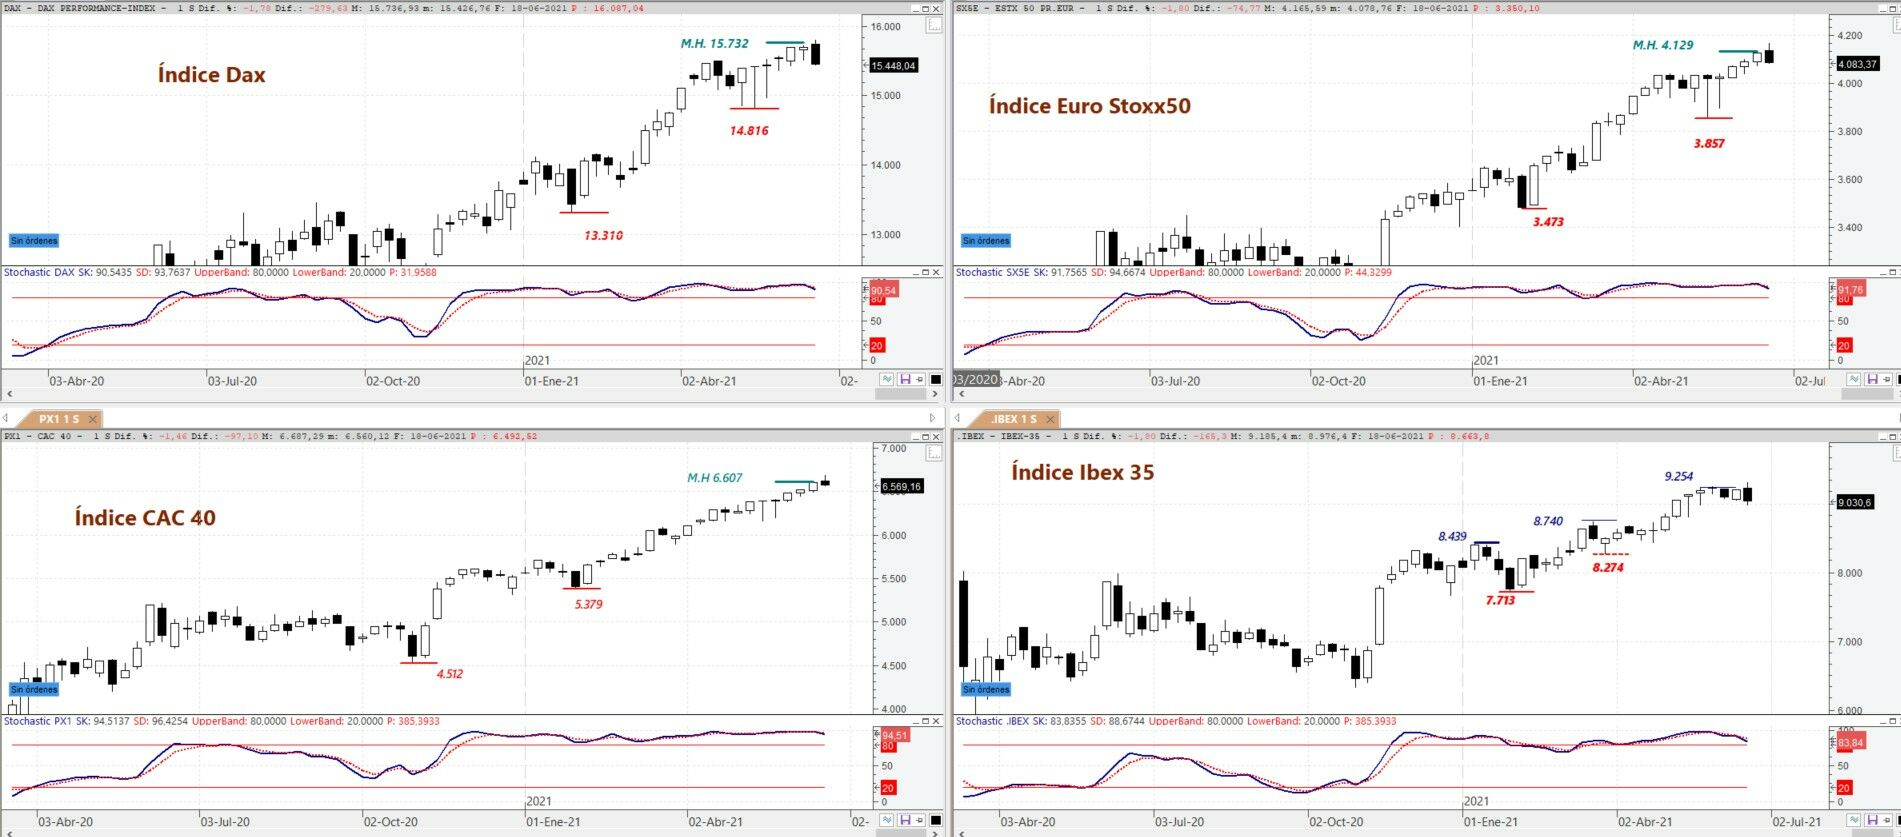 DAX, EURO STOXX 50, CAC 40 and IBEX 35 on weekly chart